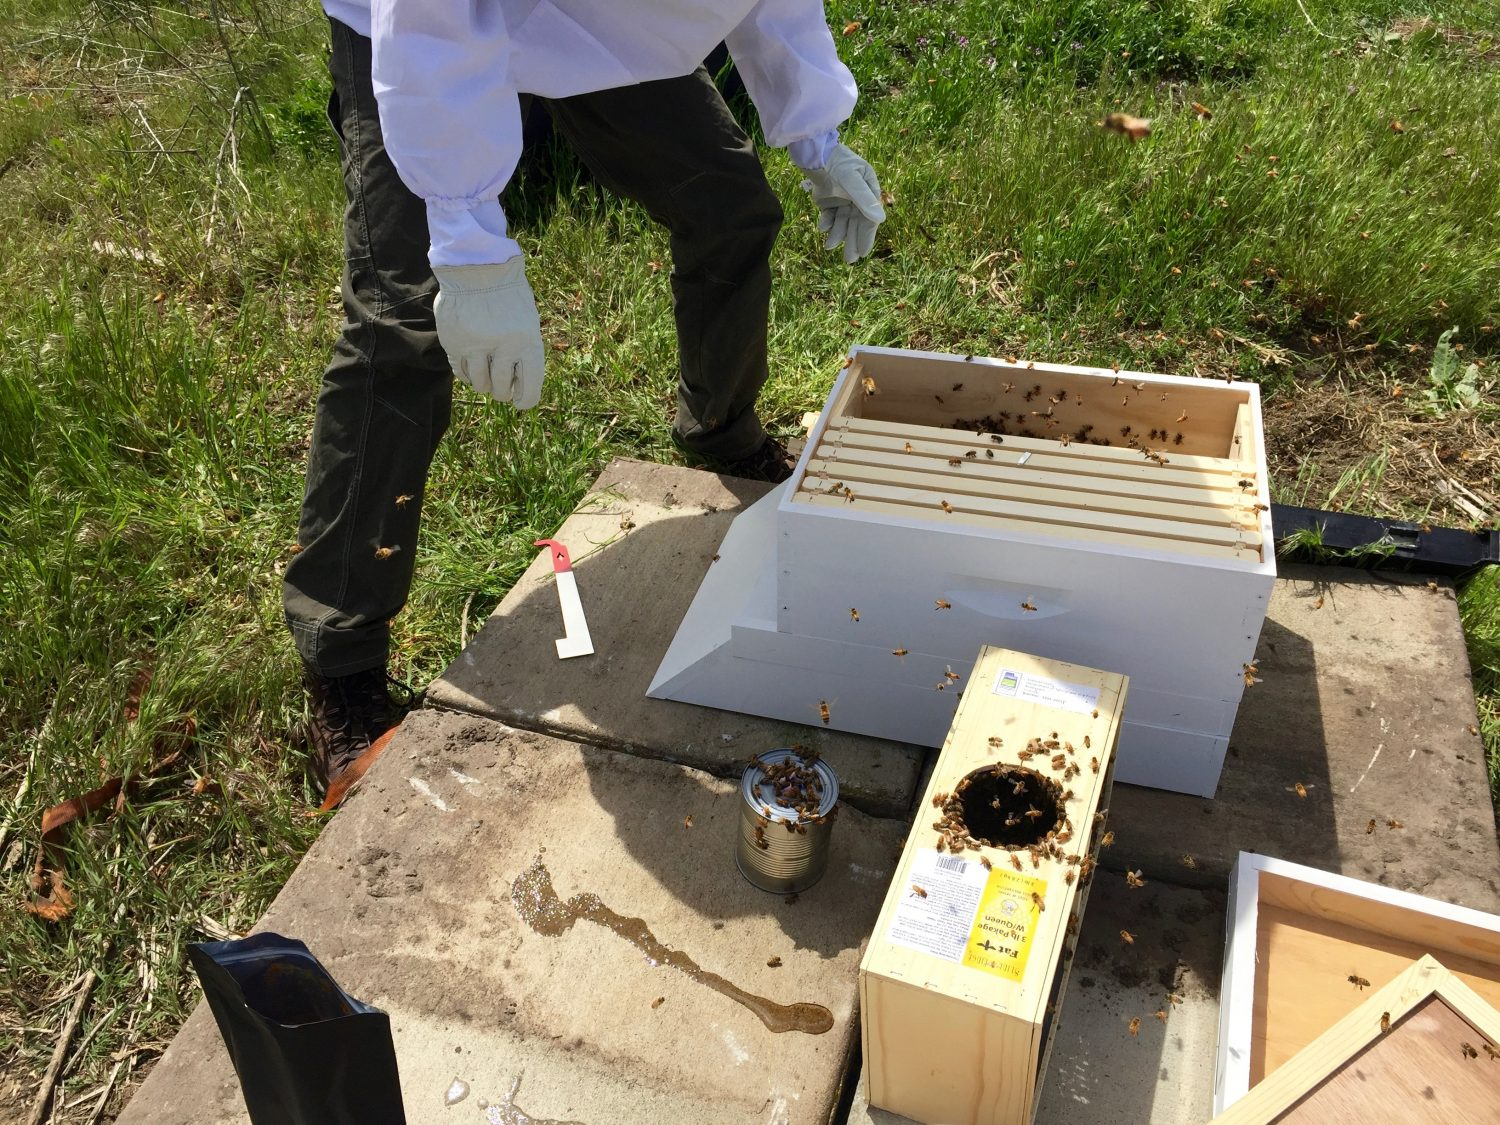 Getting the bees into the hive